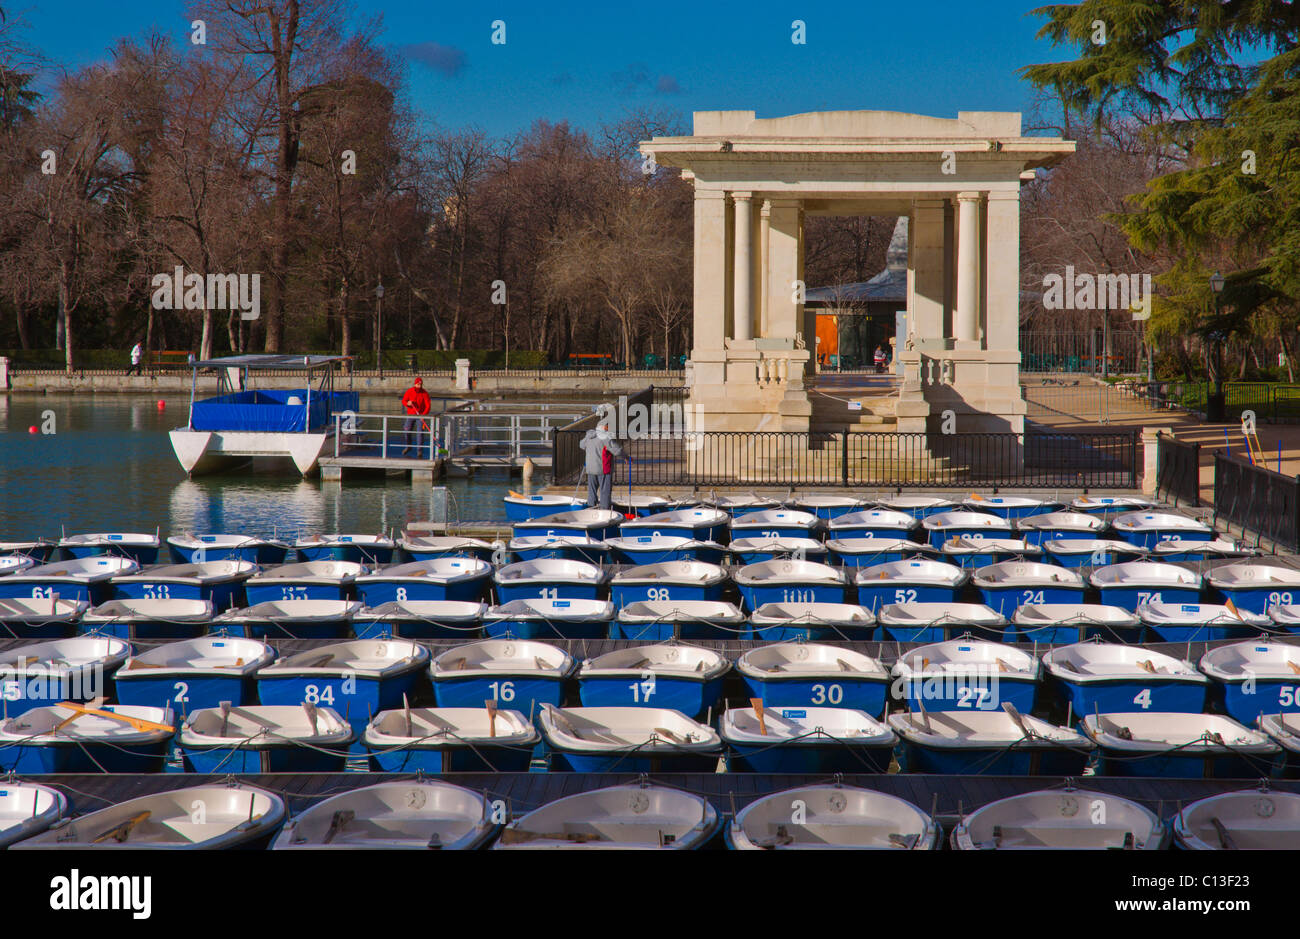 Rowing boats for rent in Estanque lake Parque del Retiro park central Madrid Spain Europe - Stock Image